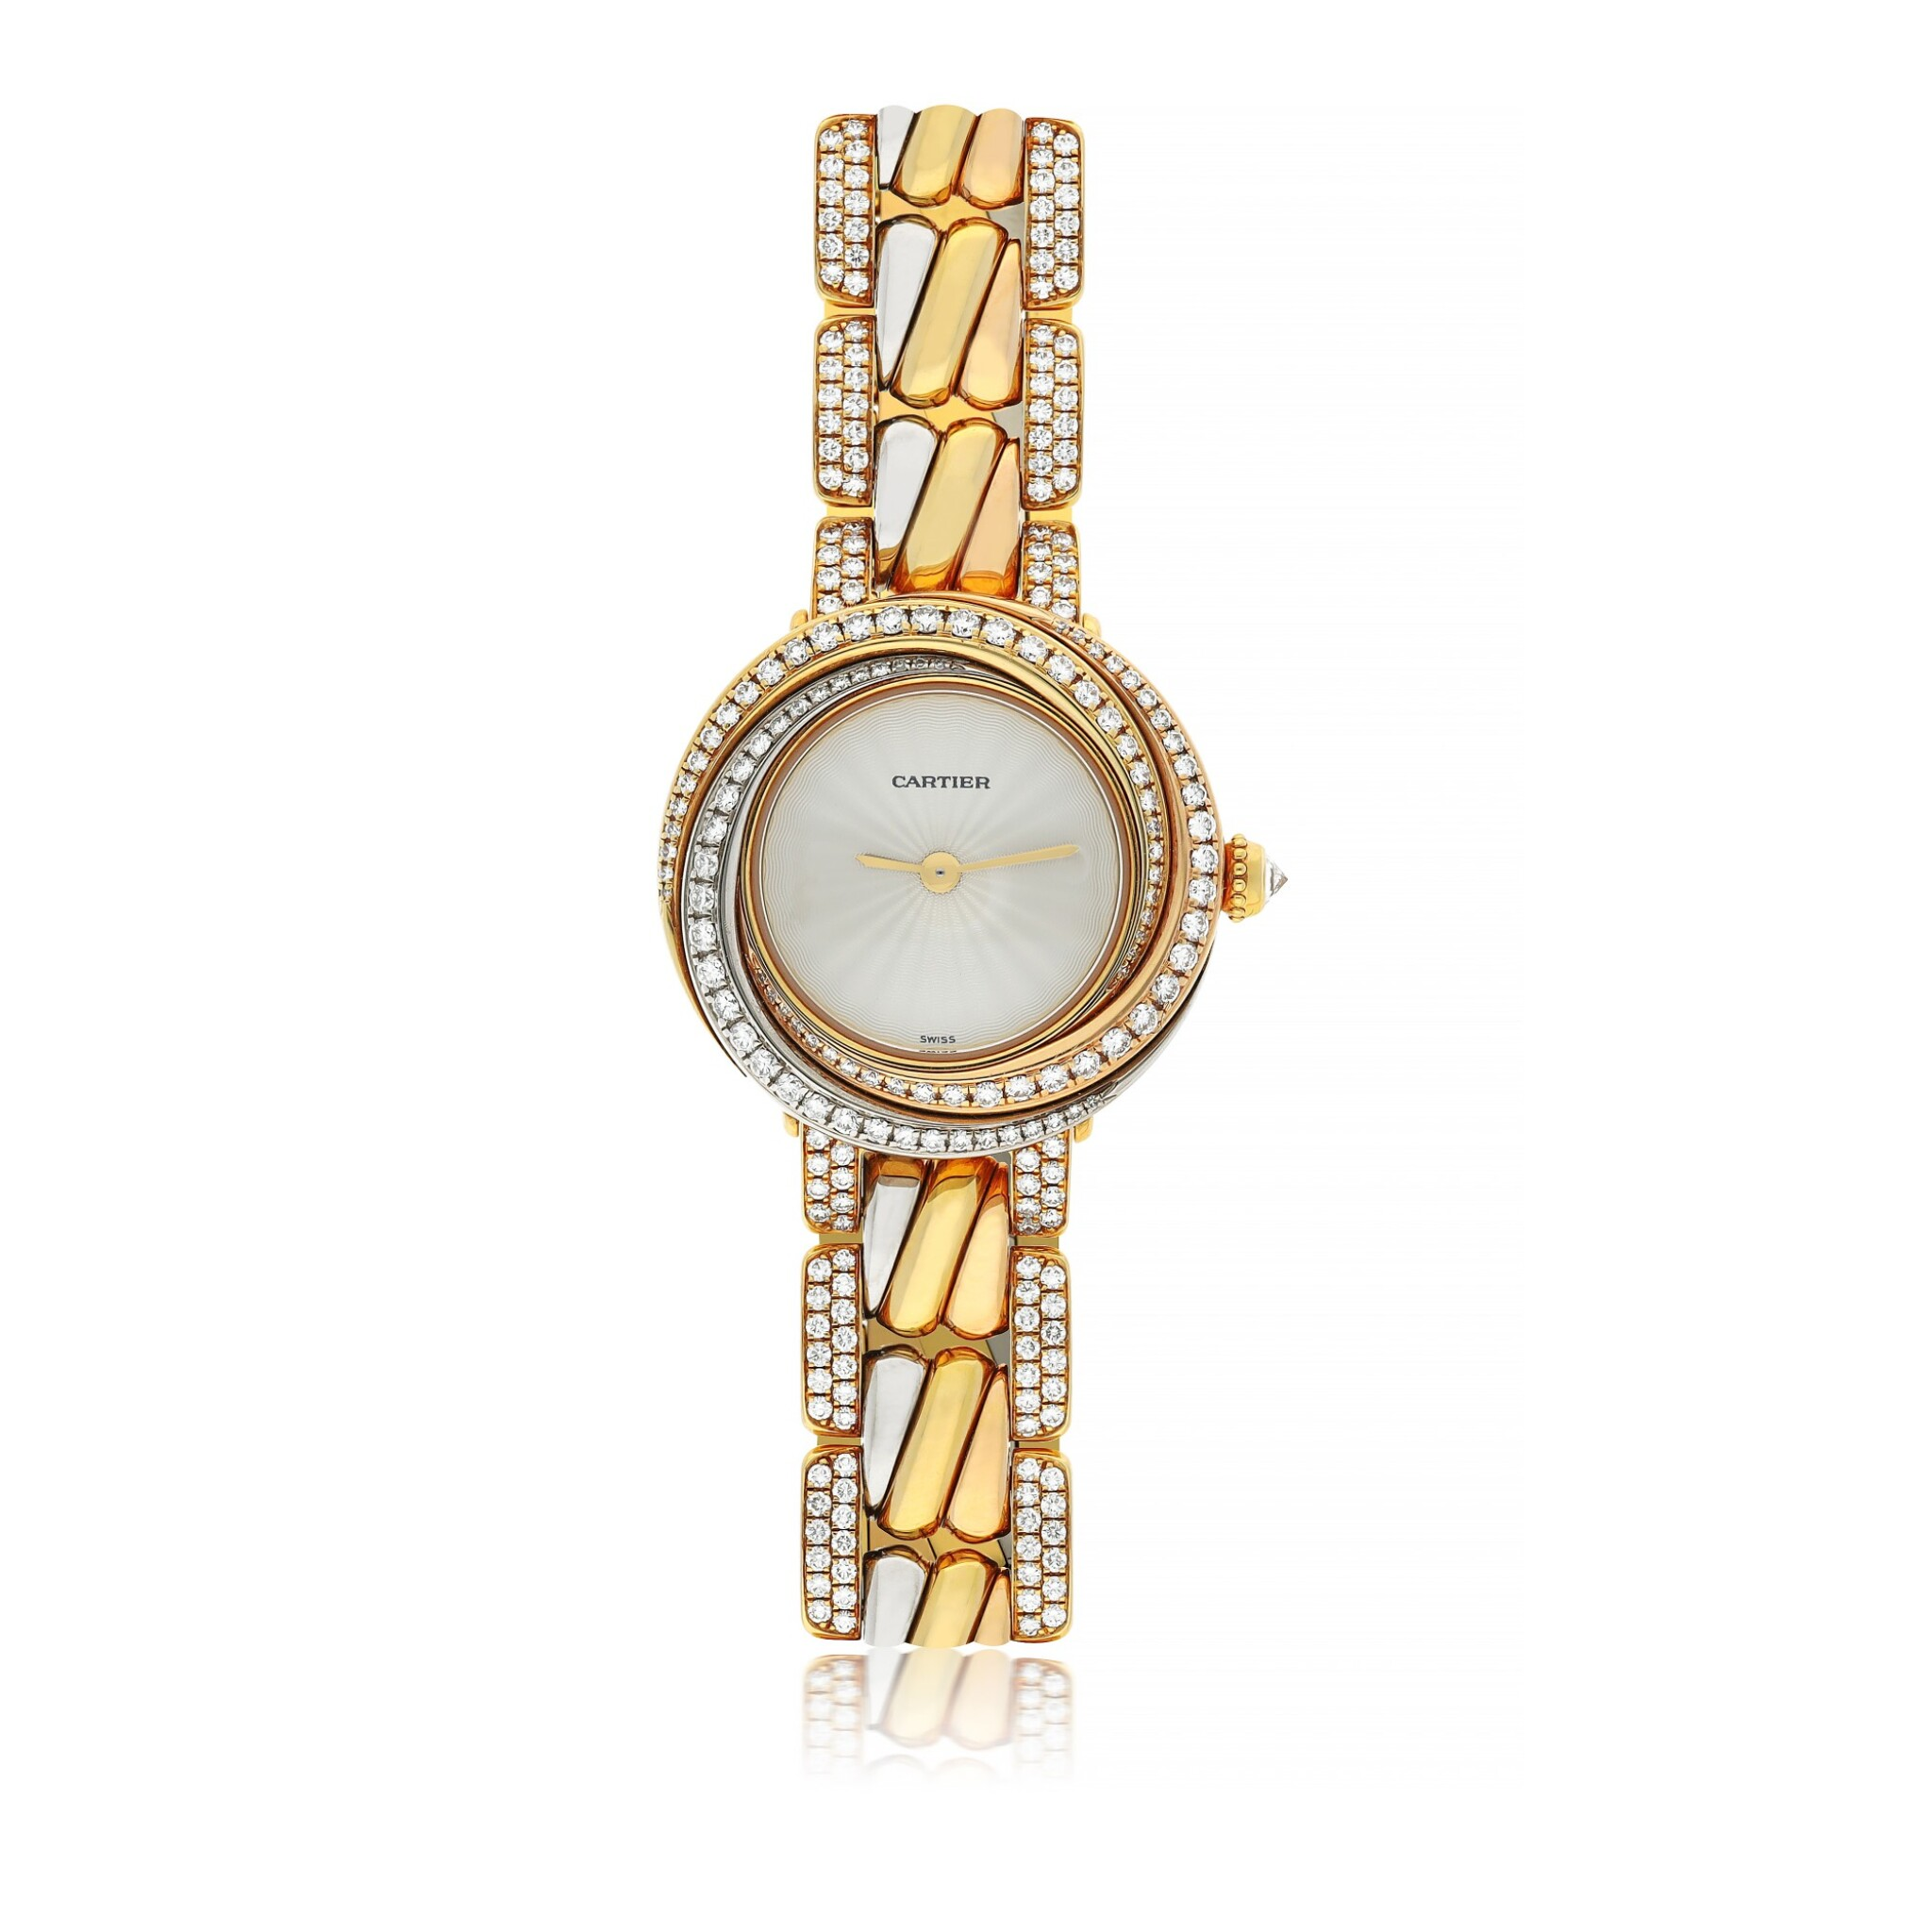 View full screen - View 1 of Lot 42. CARTIER | REF 2357 TRINITY, A TRI-COLOR GOLD AND DIAMOND SET BRACELET WATCH CIRCA 2015.